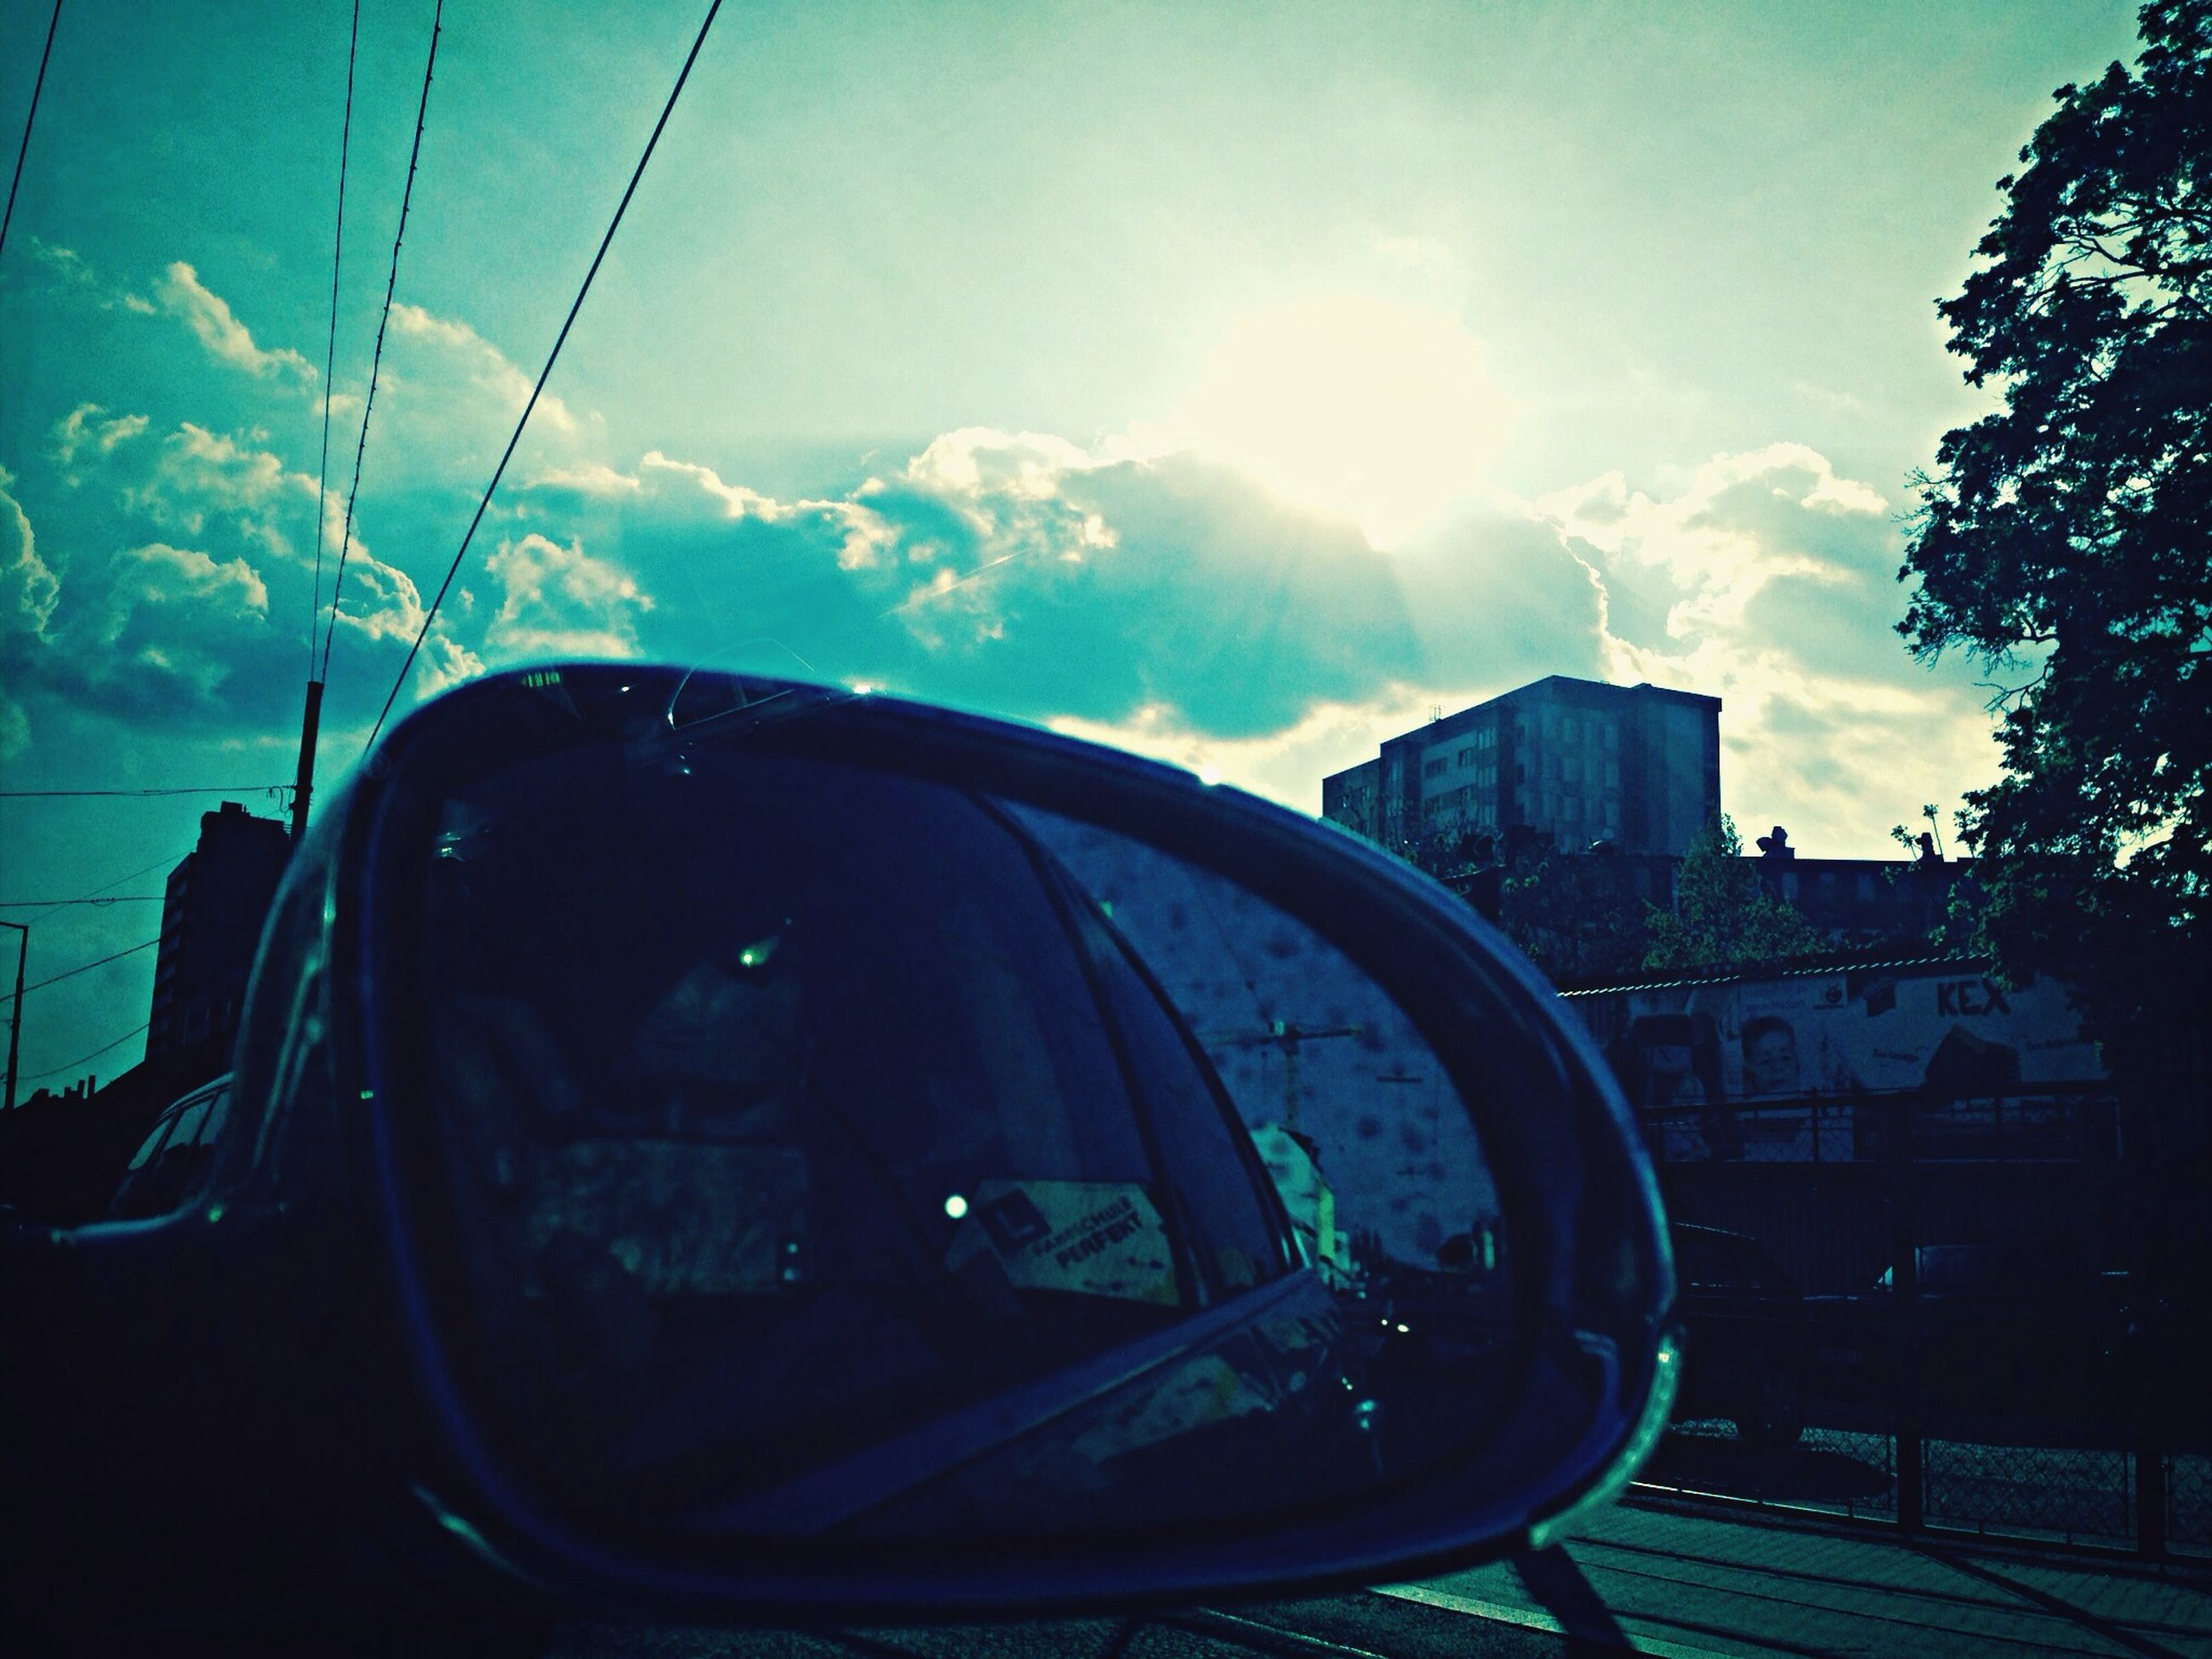 transportation, mode of transport, land vehicle, car, sky, side-view mirror, glass - material, transparent, sunlight, sun, reflection, vehicle interior, building exterior, travel, built structure, sunbeam, windshield, architecture, day, window